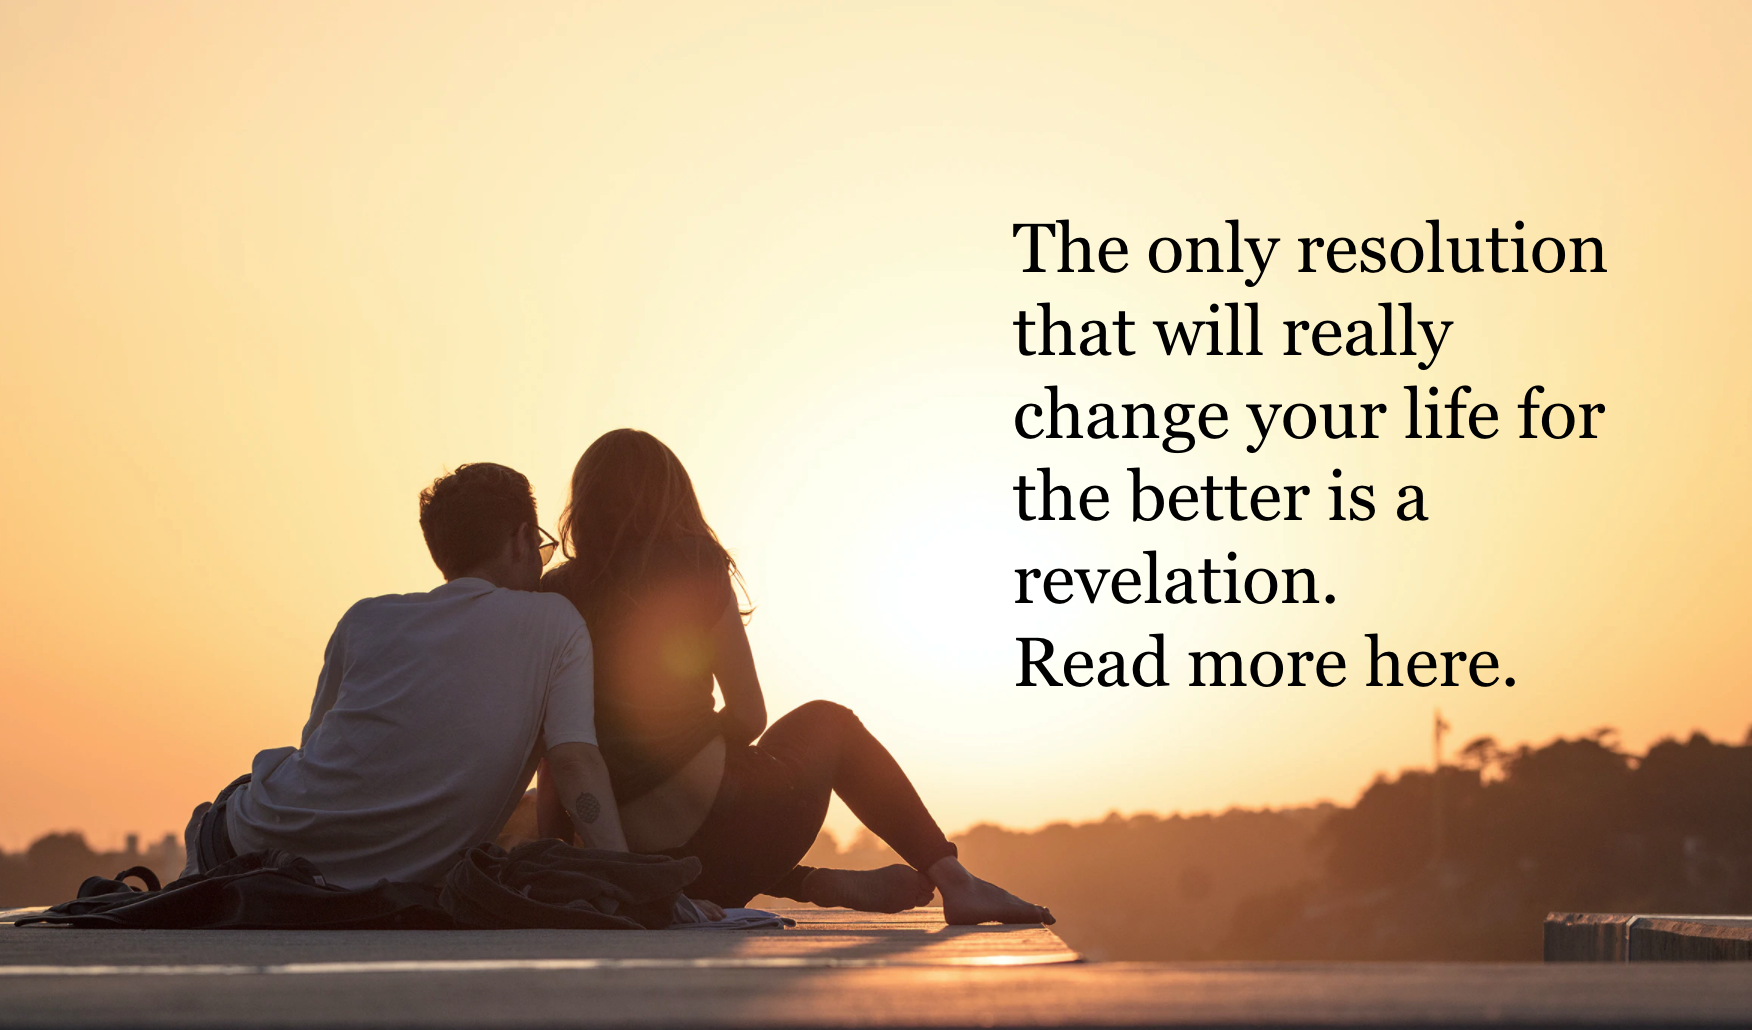 The only resolution that will really change your life for the better is a revelation. Read more here.